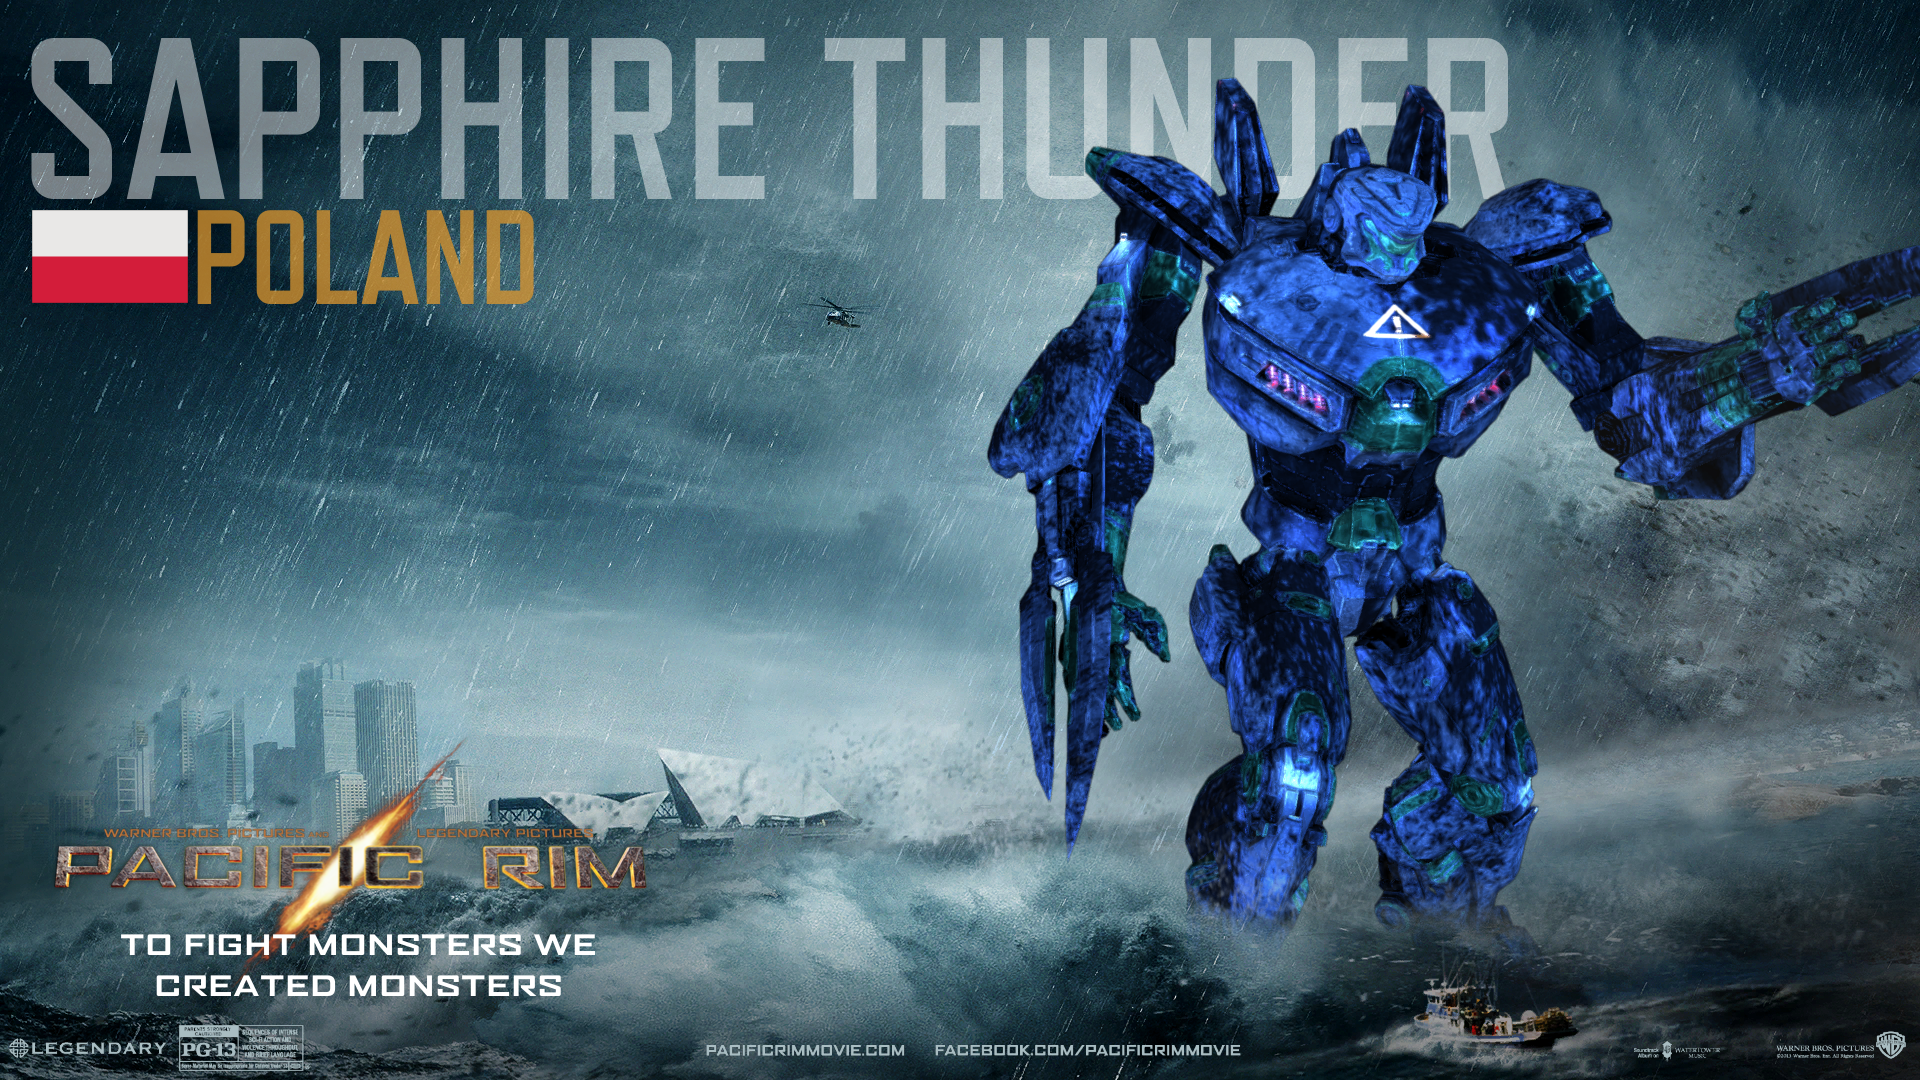 Pacific Rim Equipment >> Sapphire Thunder | Custom Pacific Rim Wiki | FANDOM ...